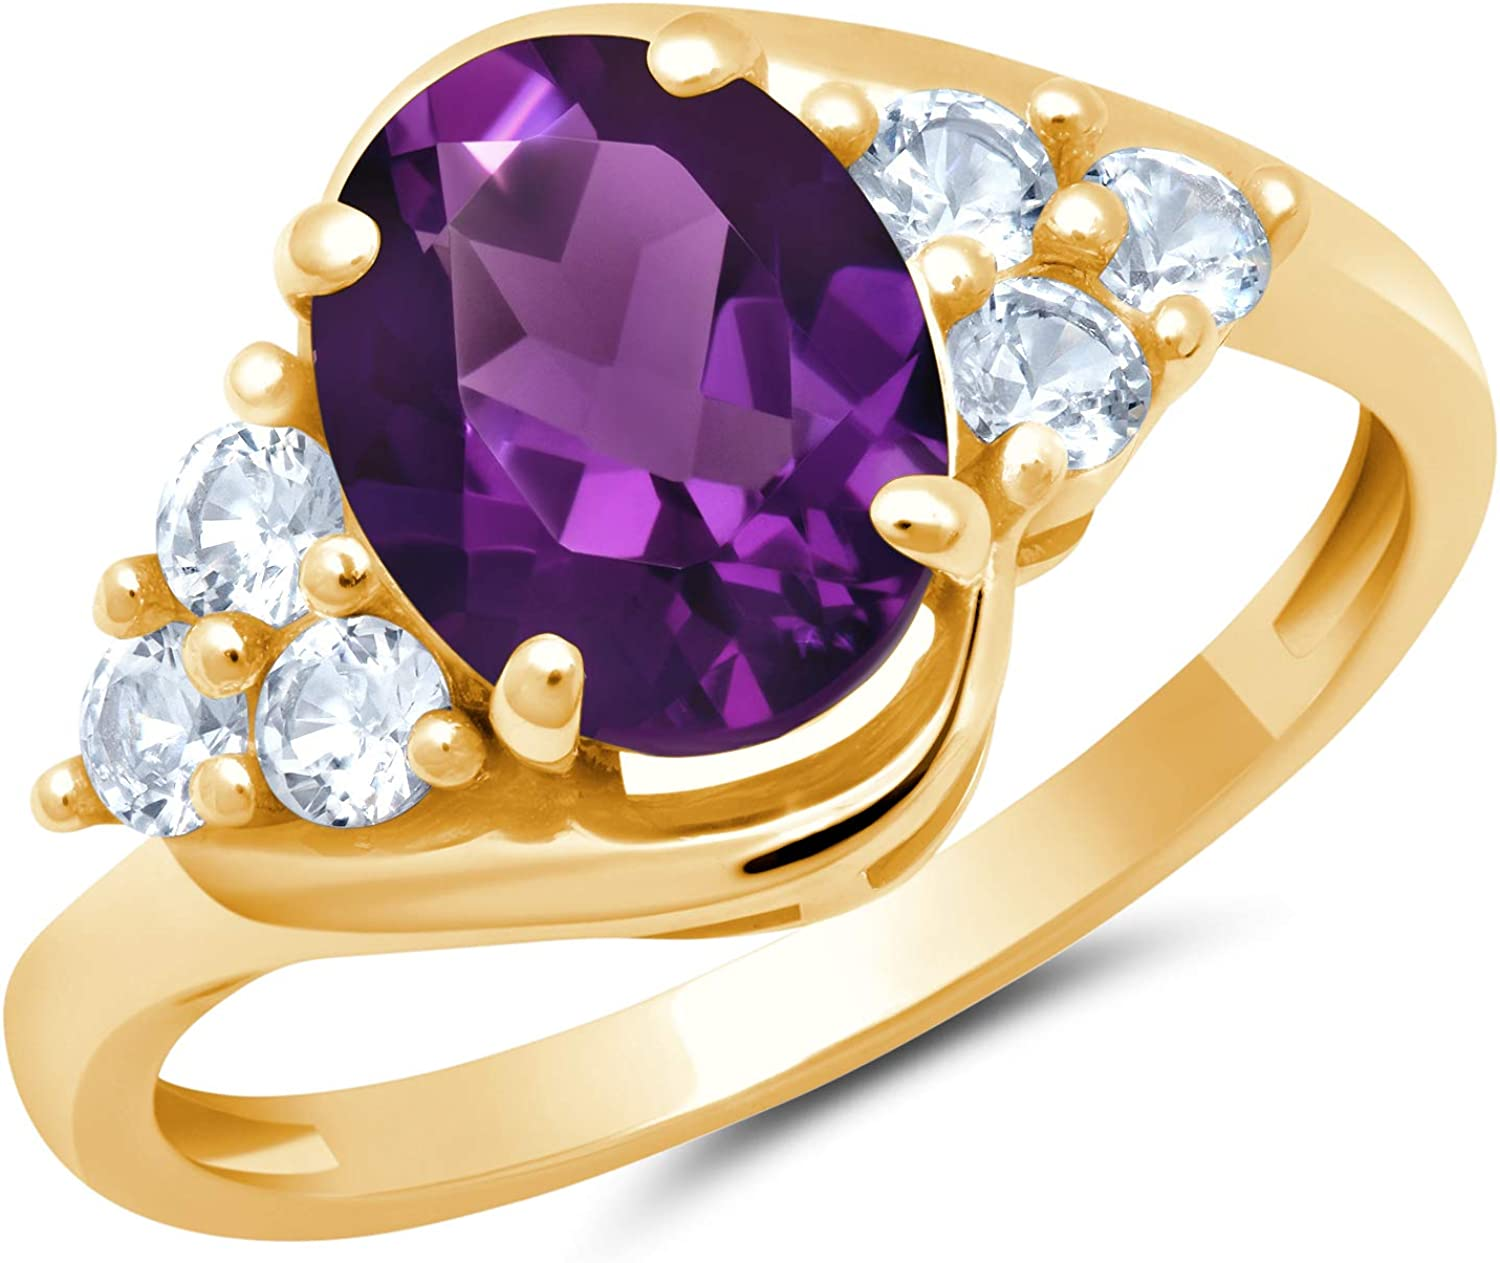 Solid We OFFer at cheap prices 10K Yellow or White Gold Cut Births Amethyst Oval Columbus Mall February